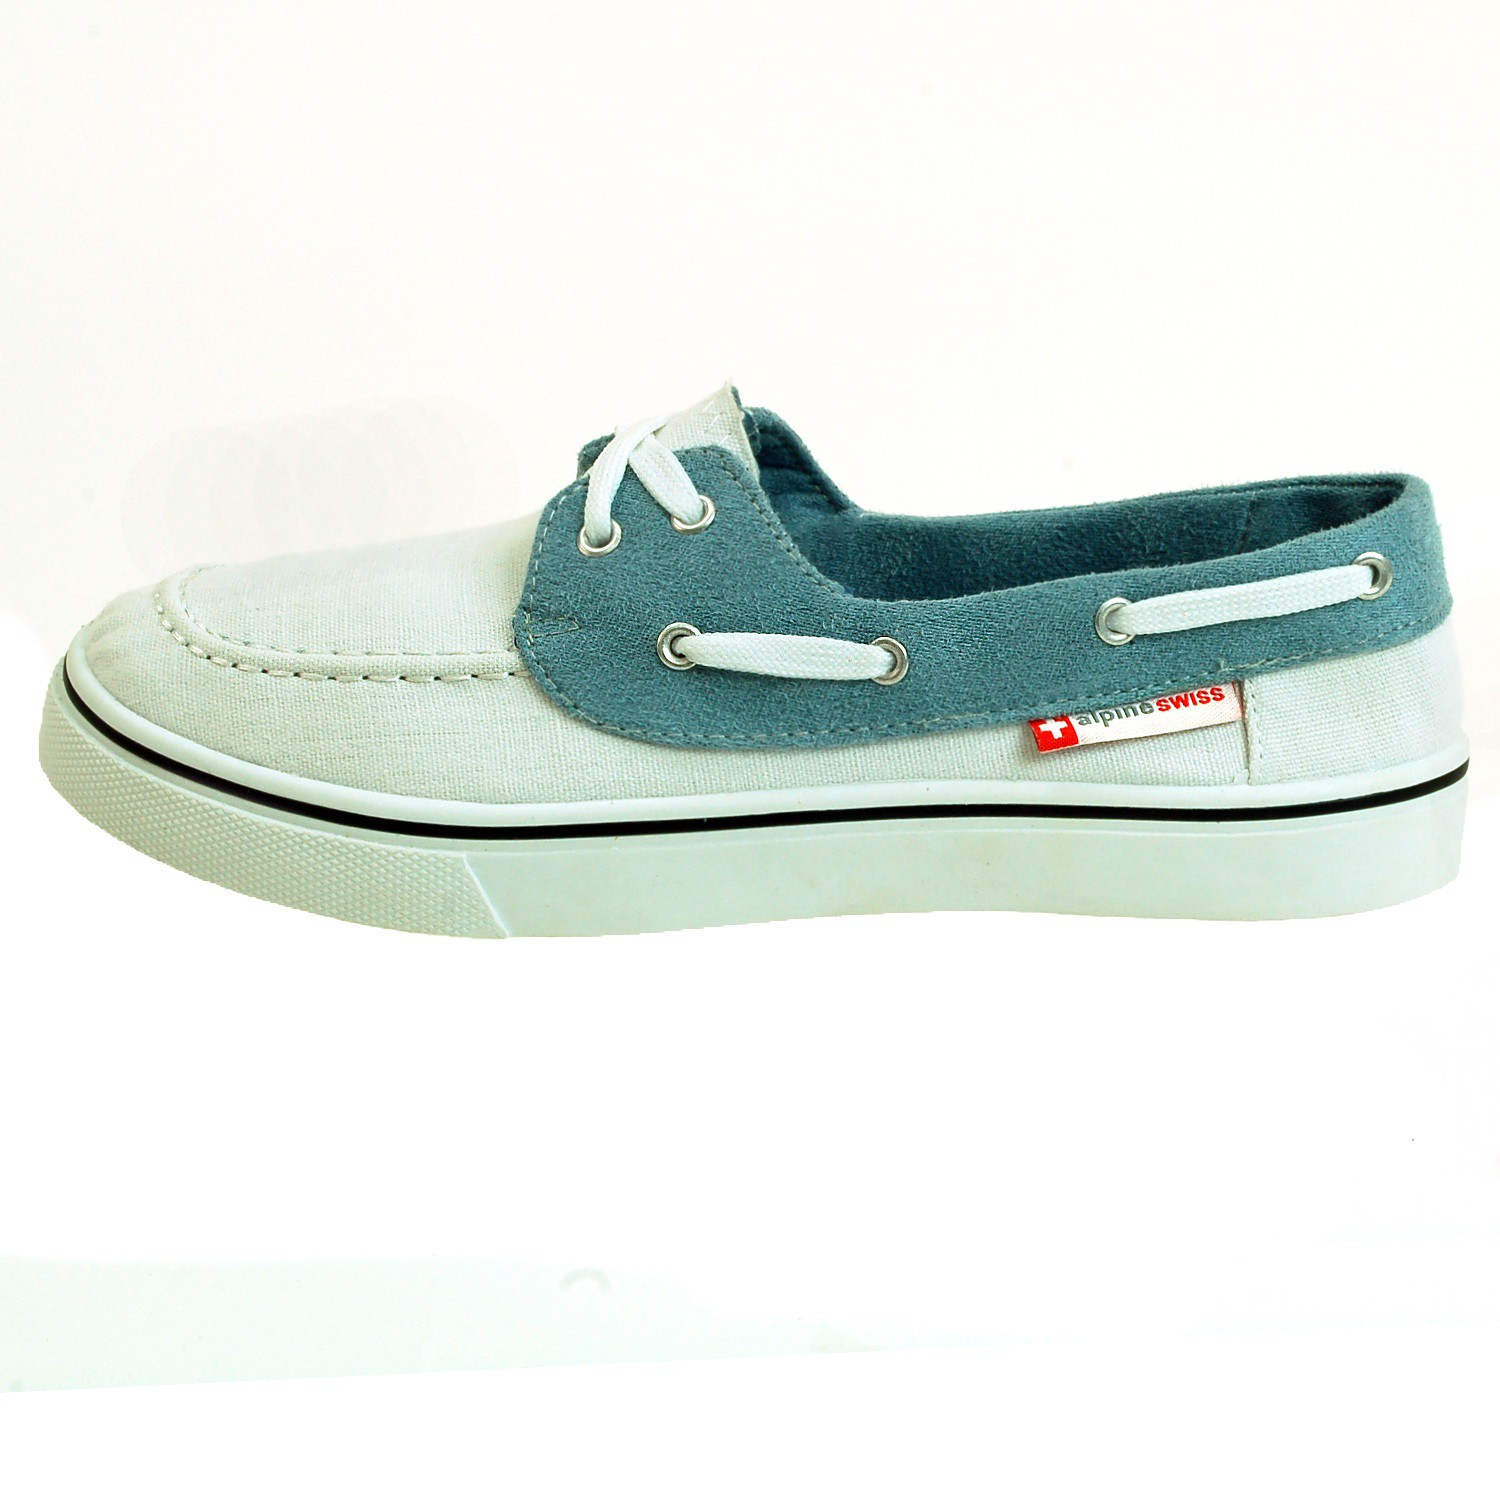 AlpineSwiss Antigua Mens Boat Shoes Lace Up Loafer Deck ...